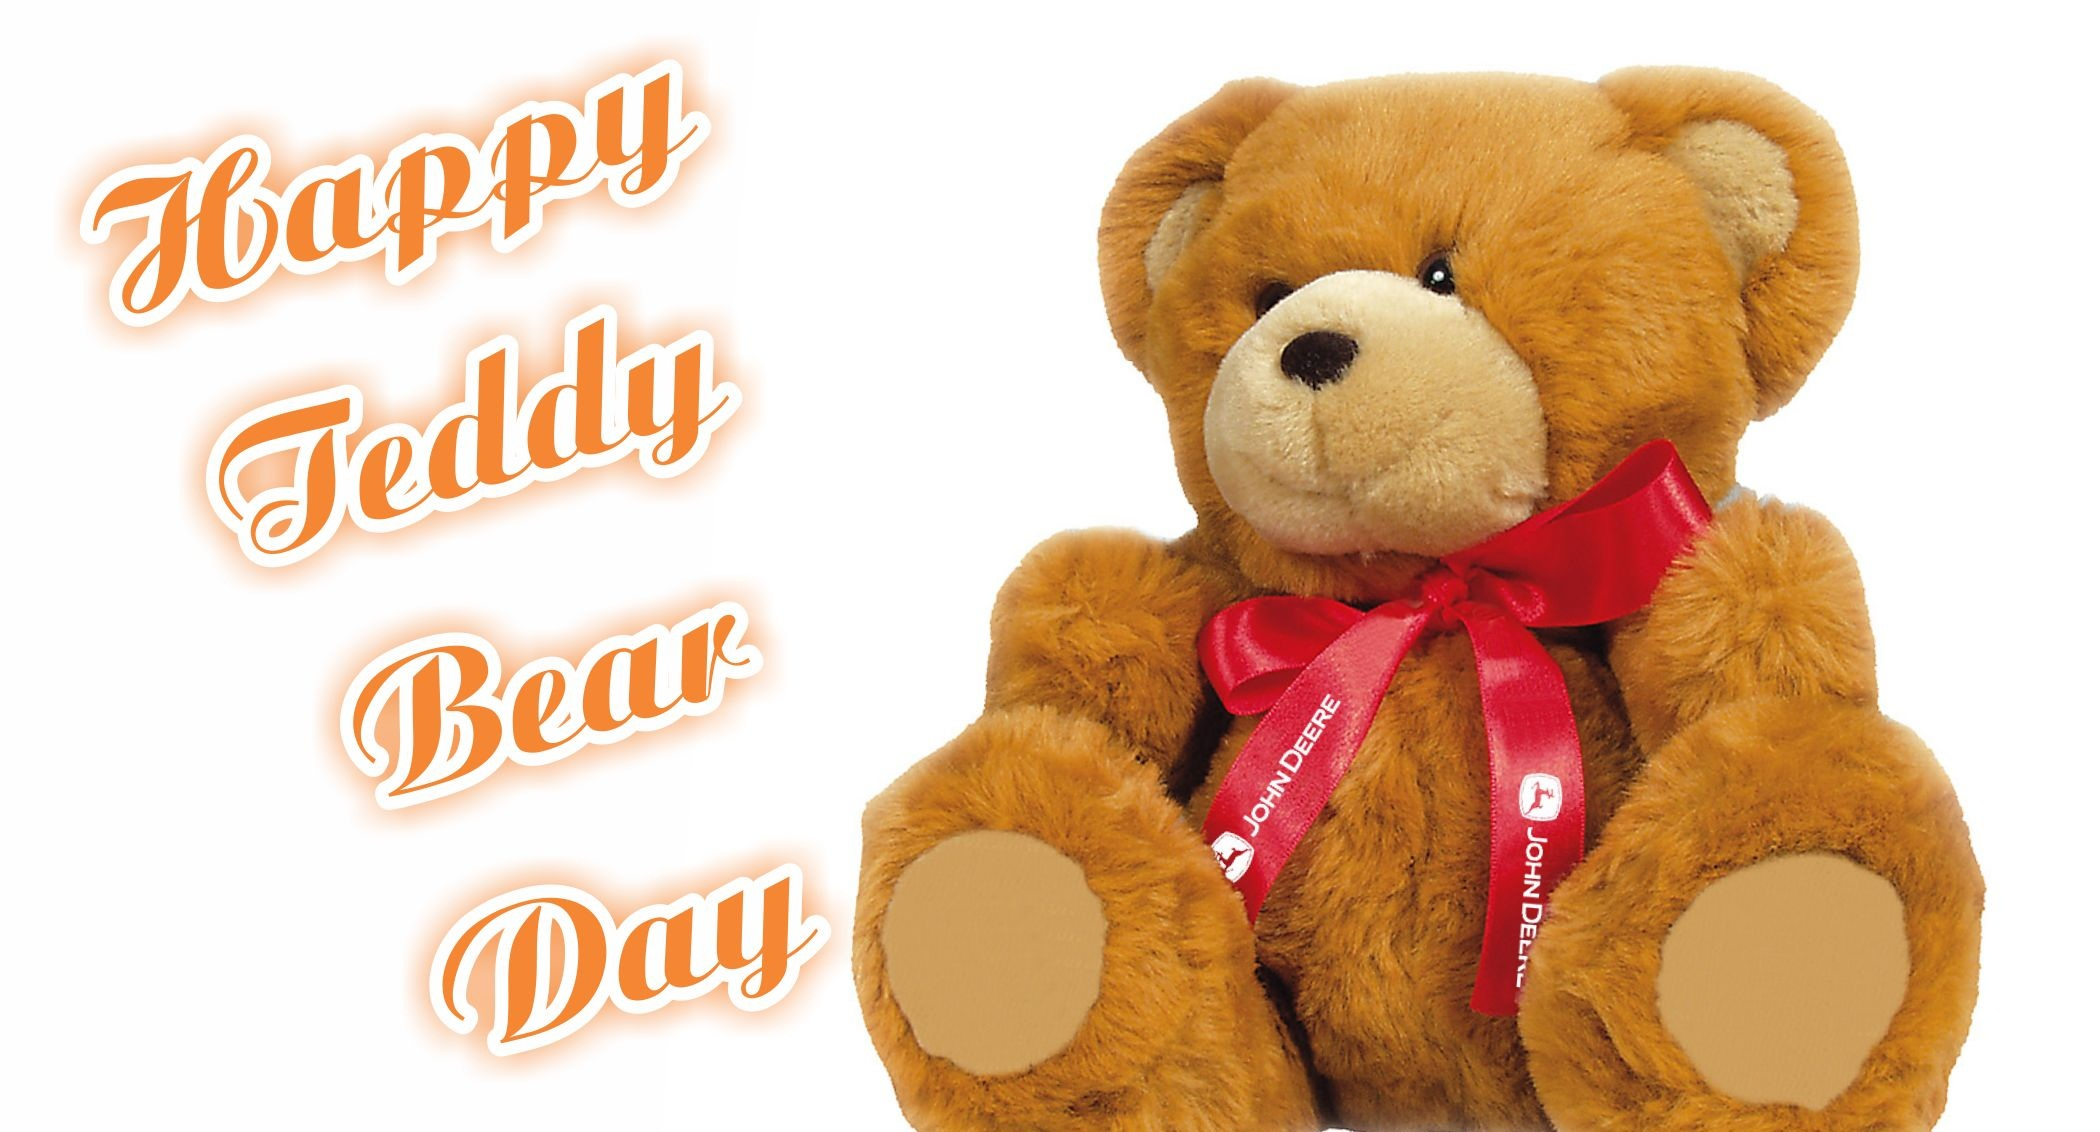 Teddy Bear Day 2018 HD Picture Download